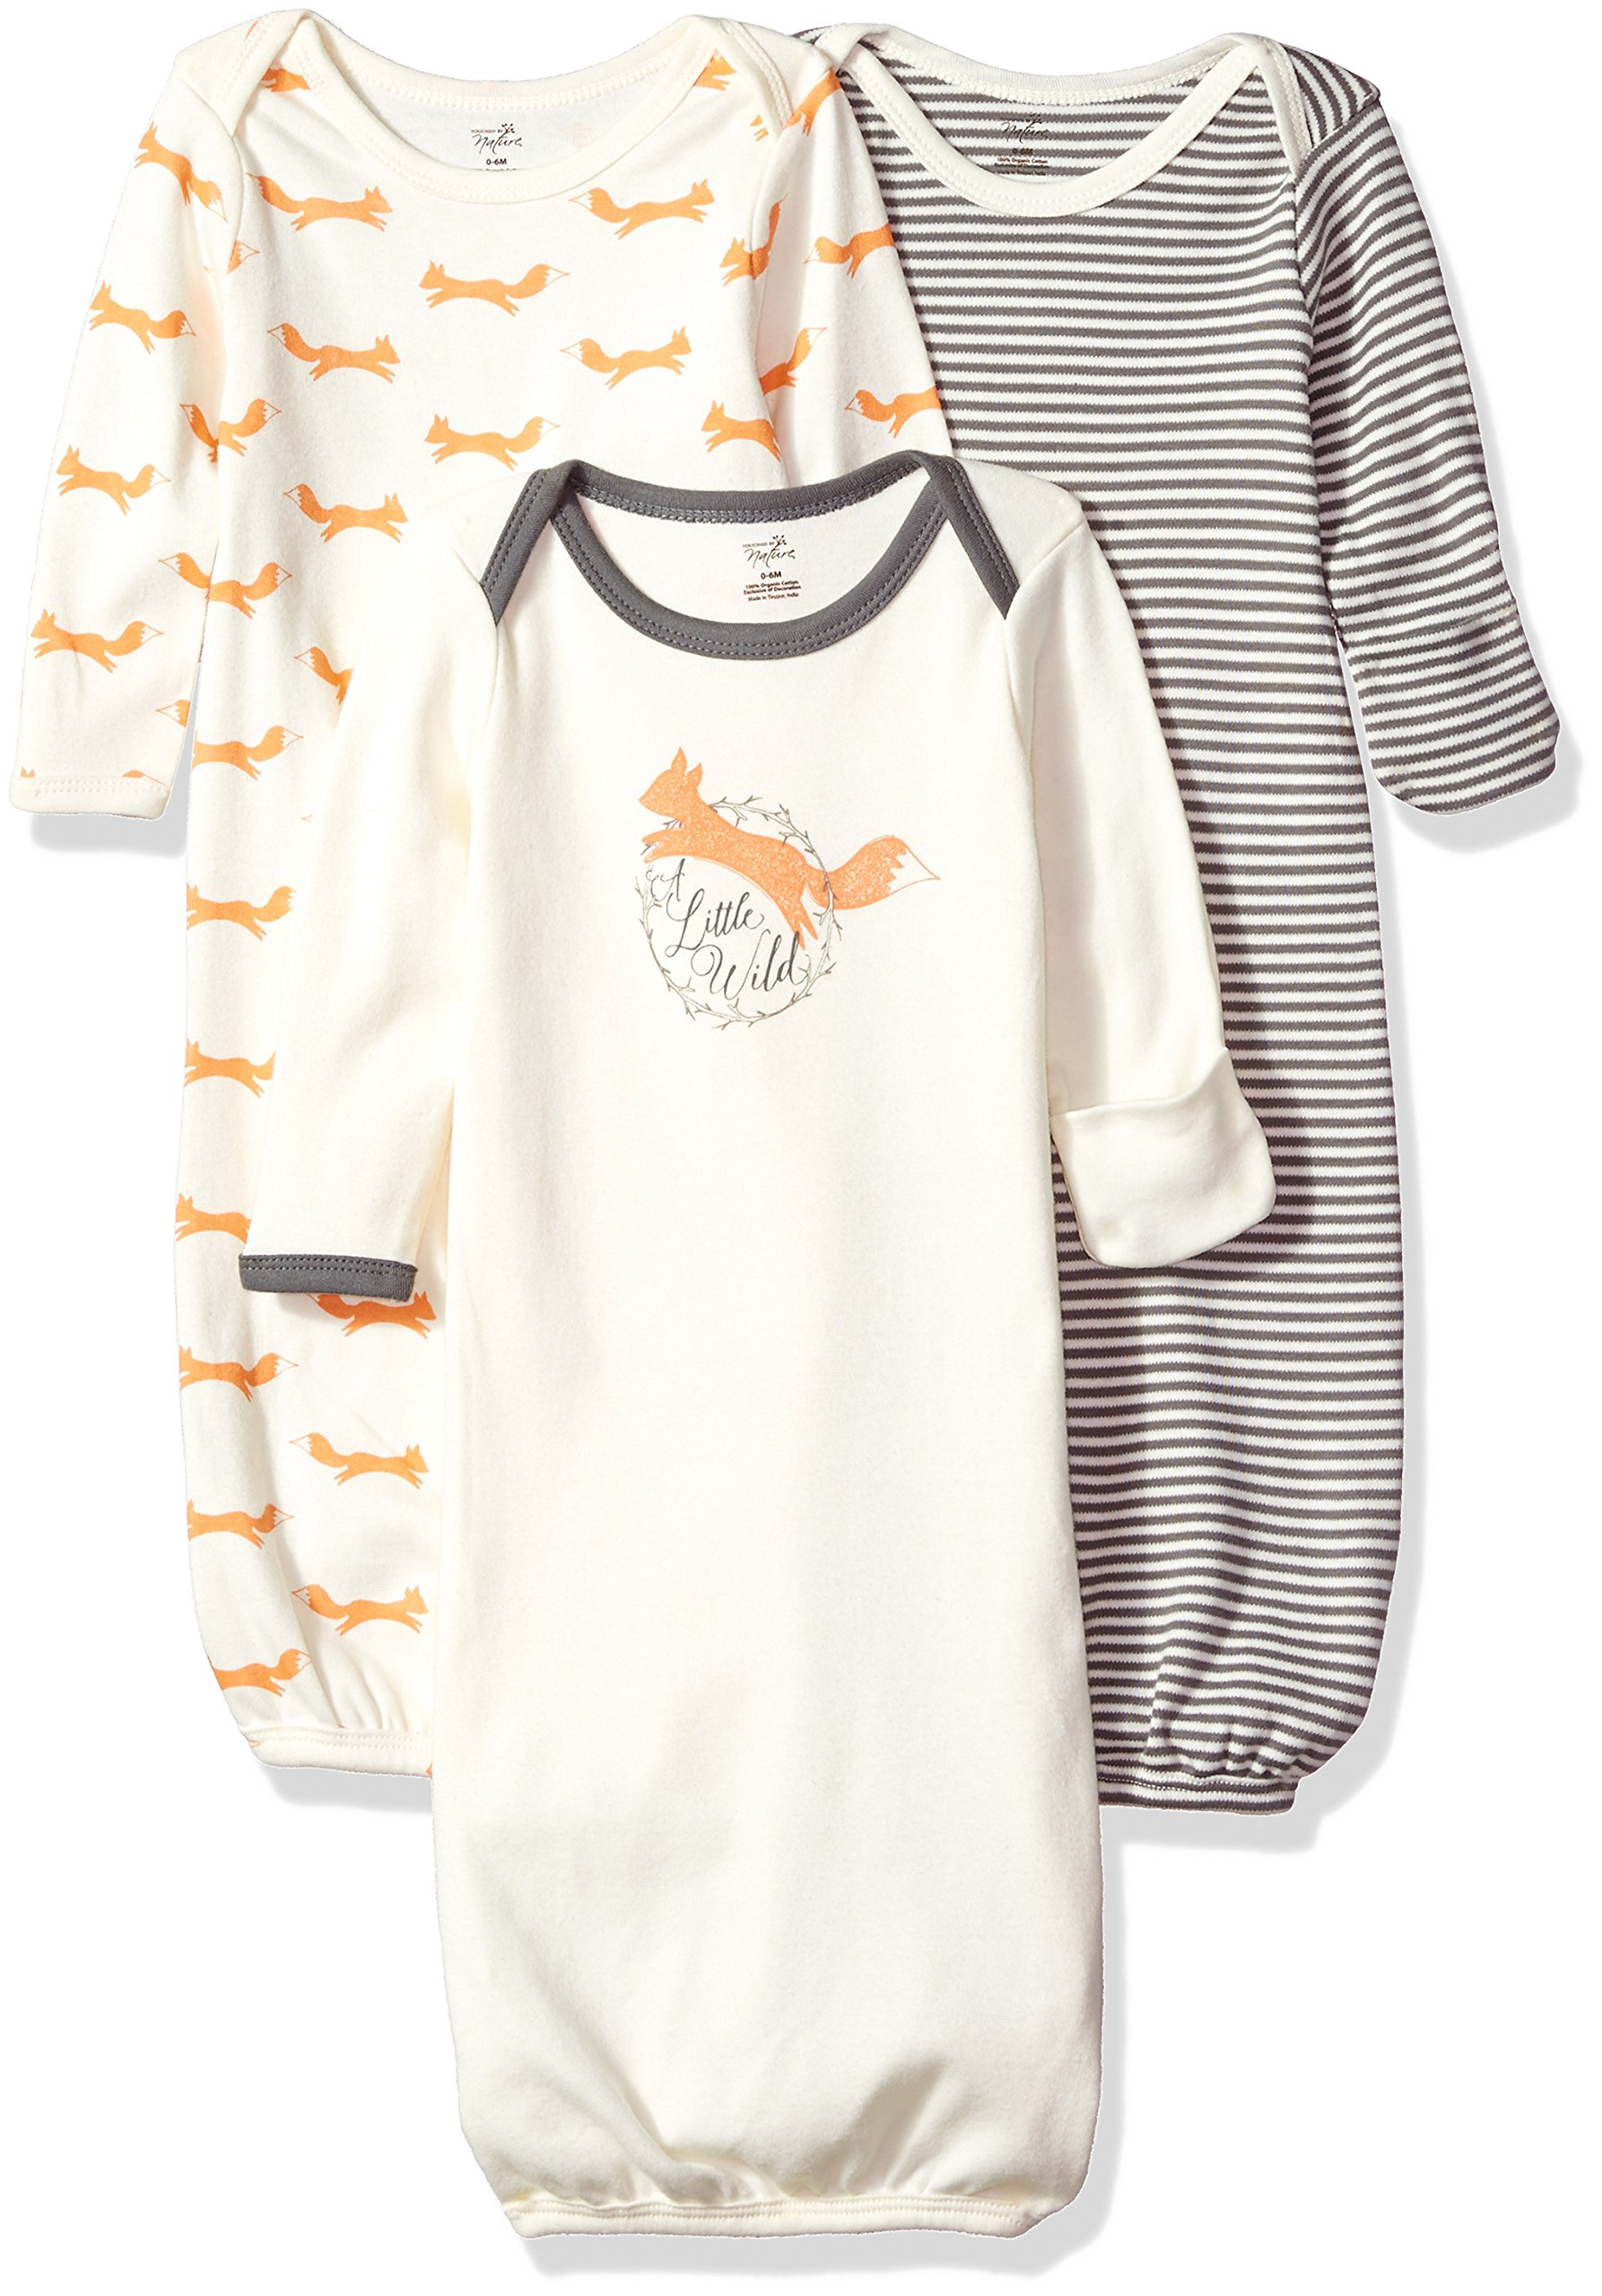 Touched by Nature Baby 3-Pack Organic Cotton Gown, Fox, 0-6 Months